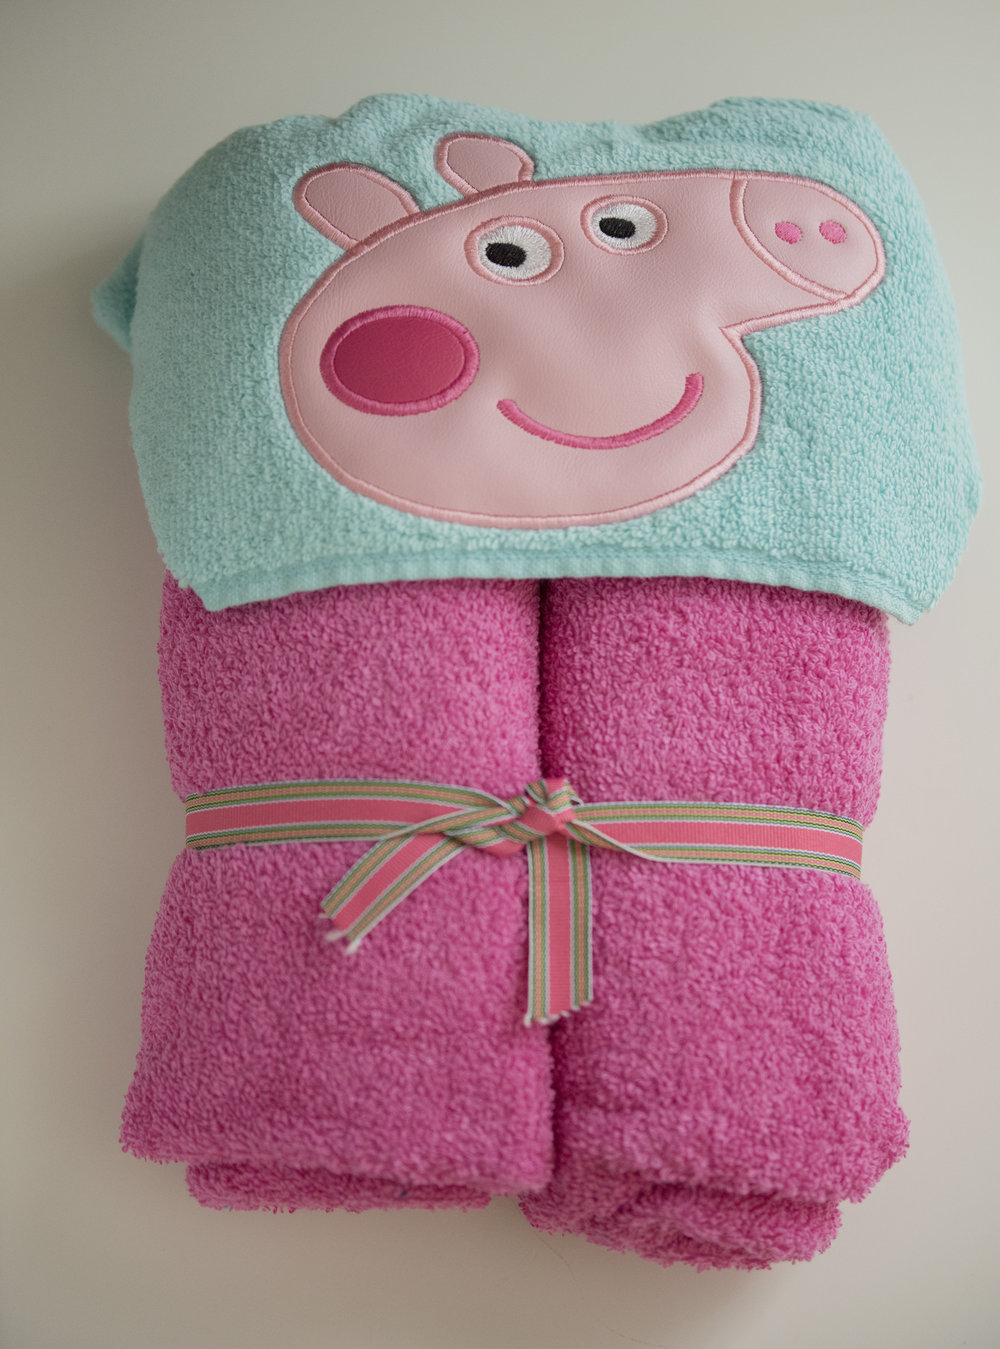 How cute is this hooded towel?!